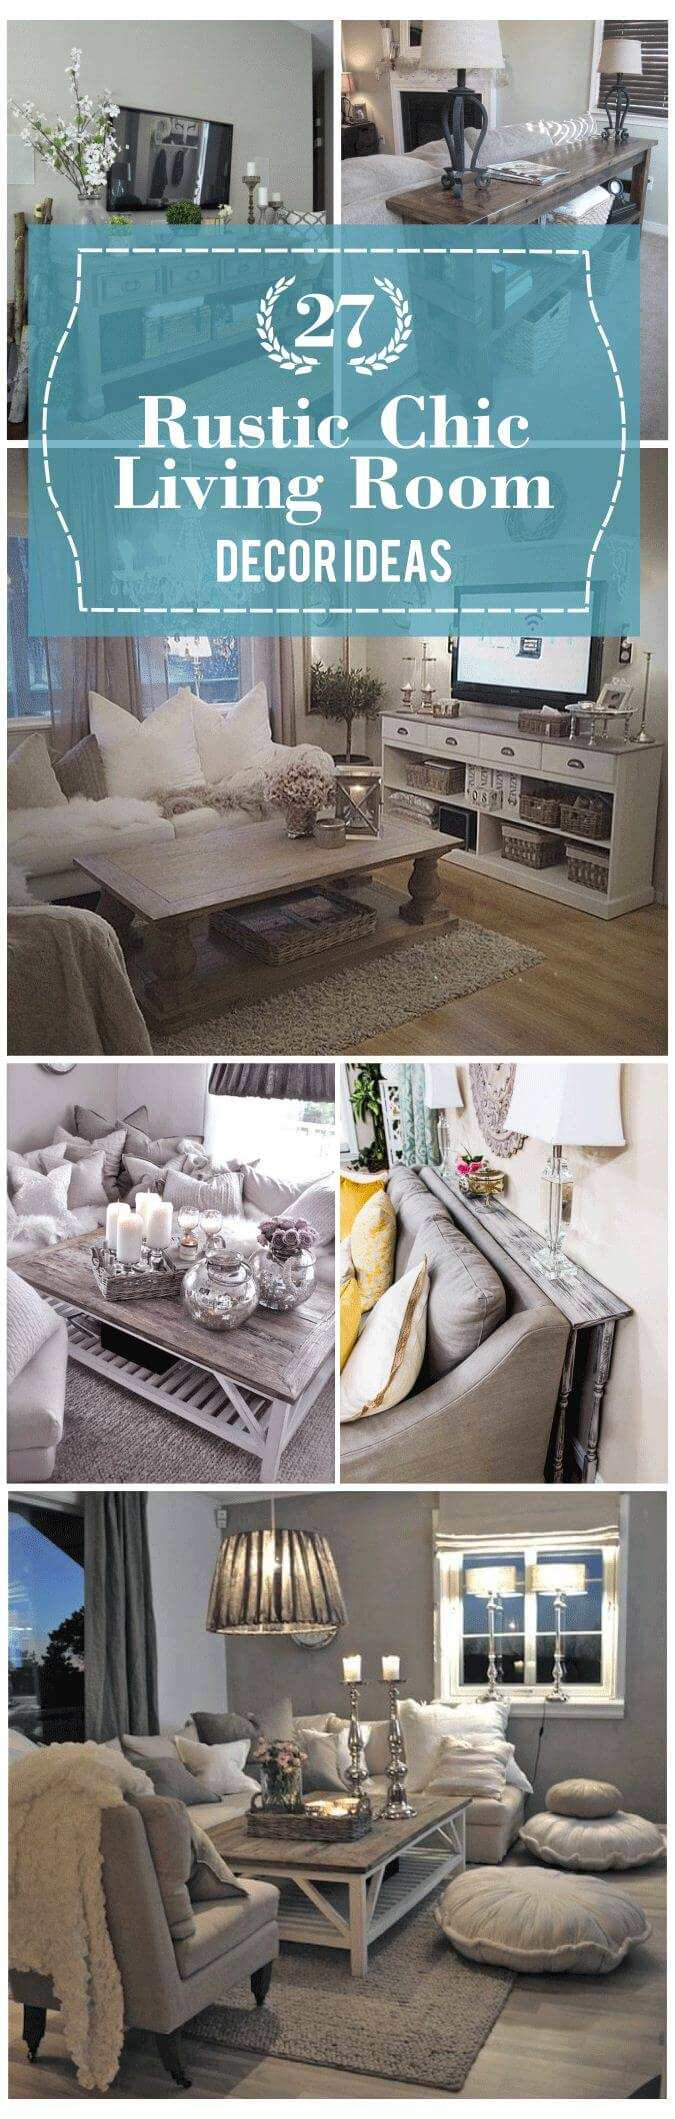 rustic rugs for living room